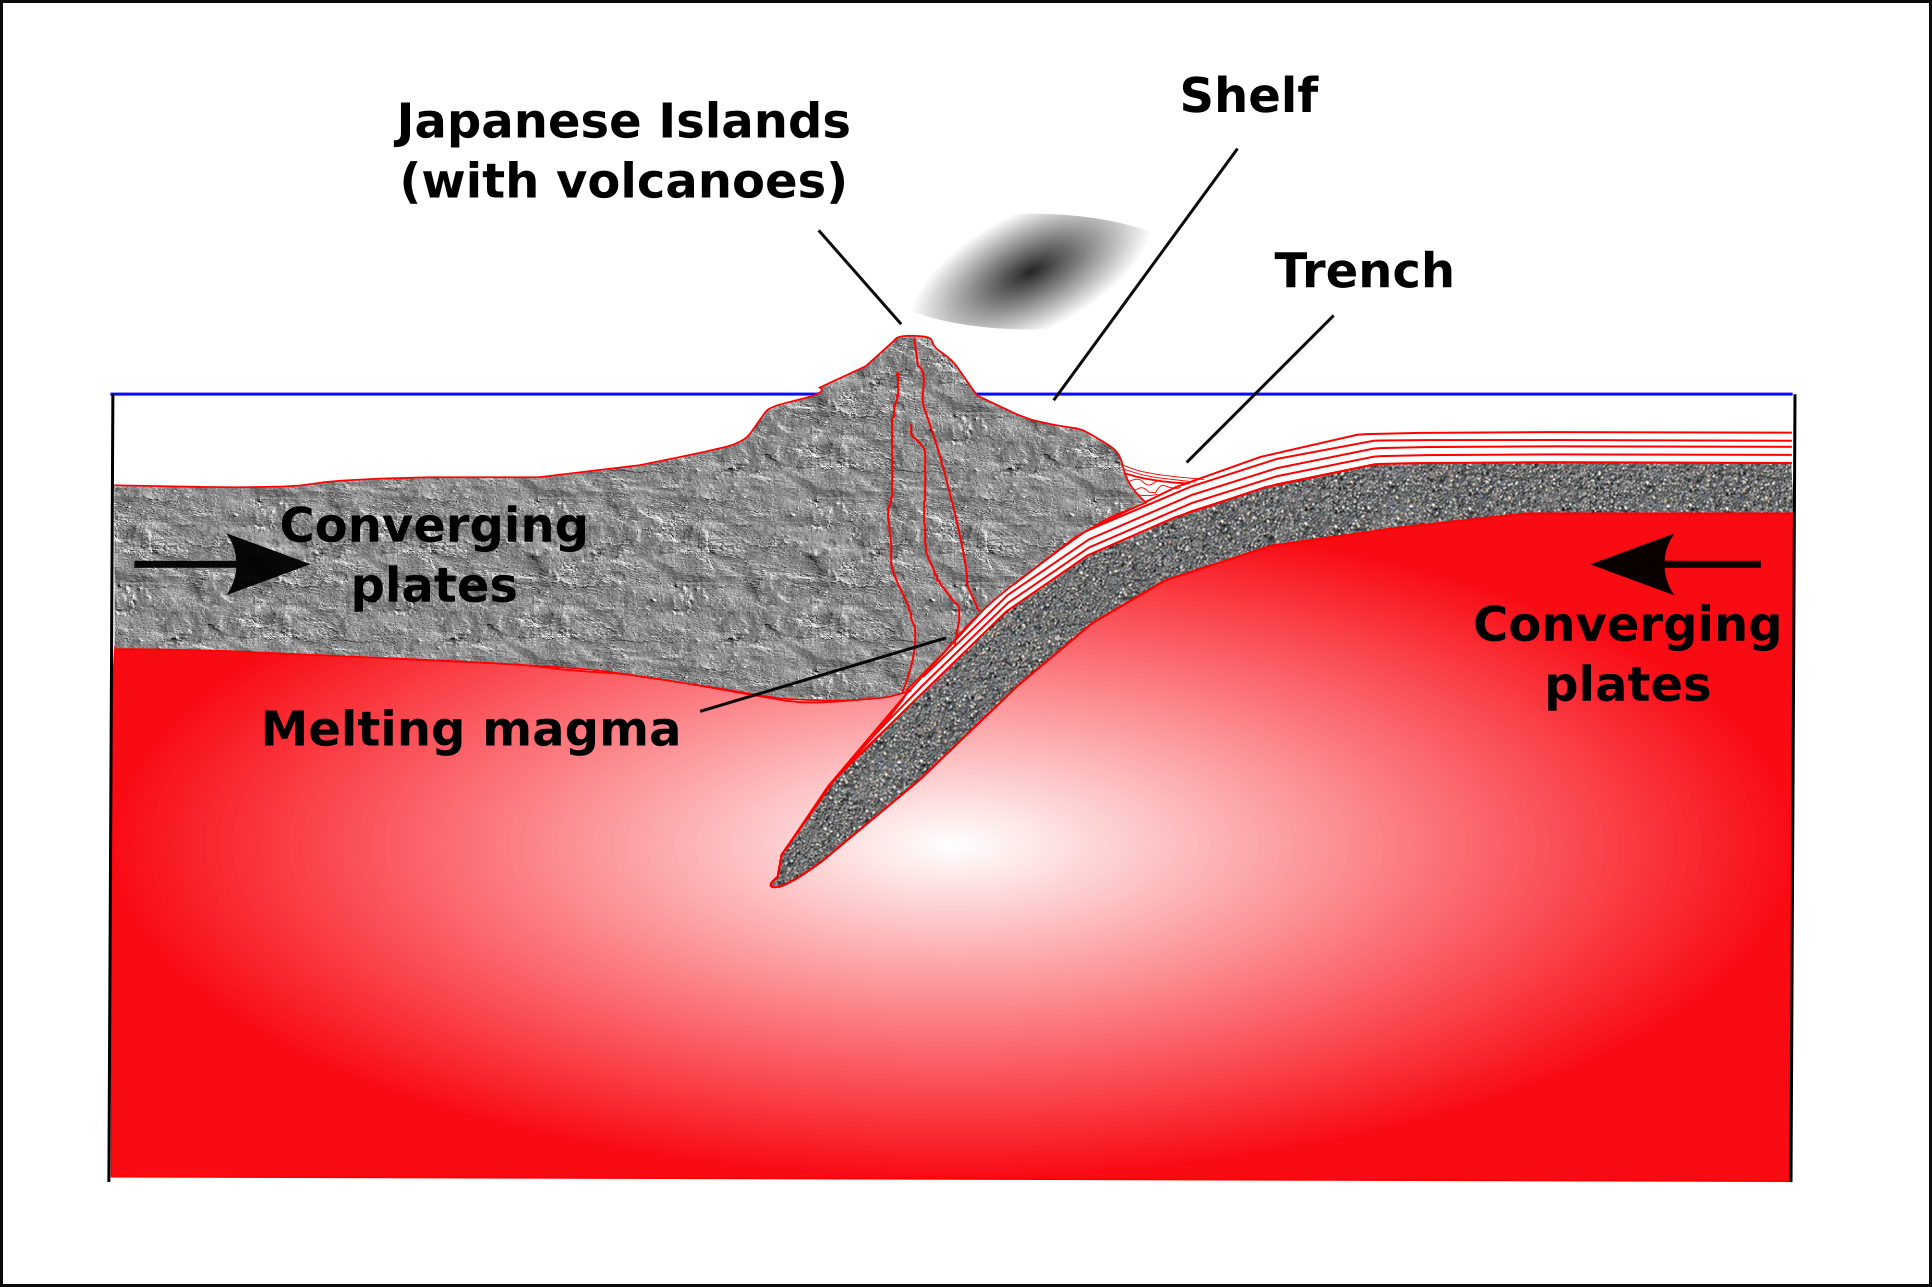 Magma drawing volcano diagram. Montessori muddle an oceanicoceanic